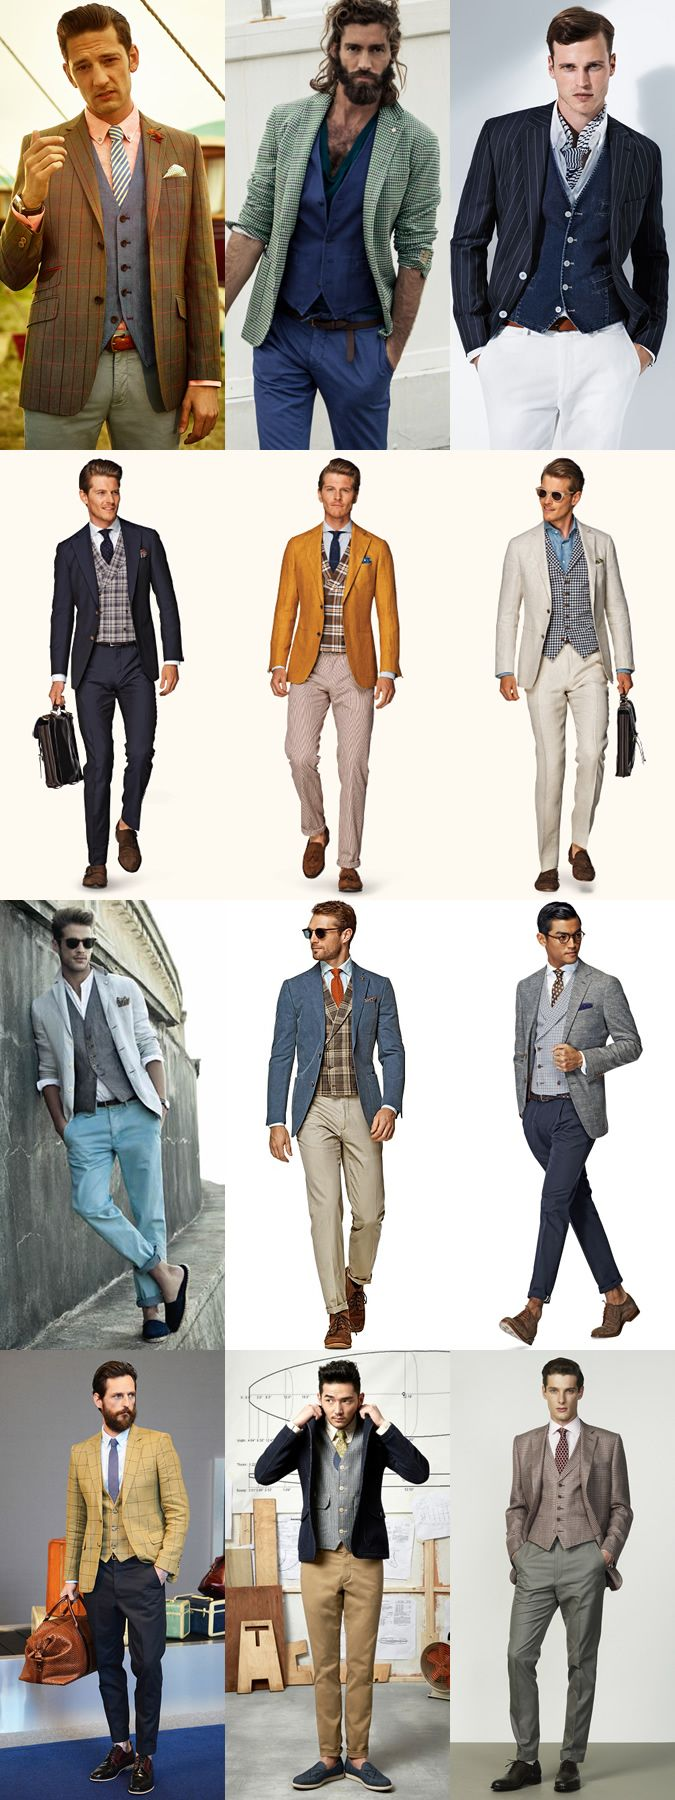 Men's Waistcoat Layering - Formal and Smart-Casual Outfit Inspiration Lookbook